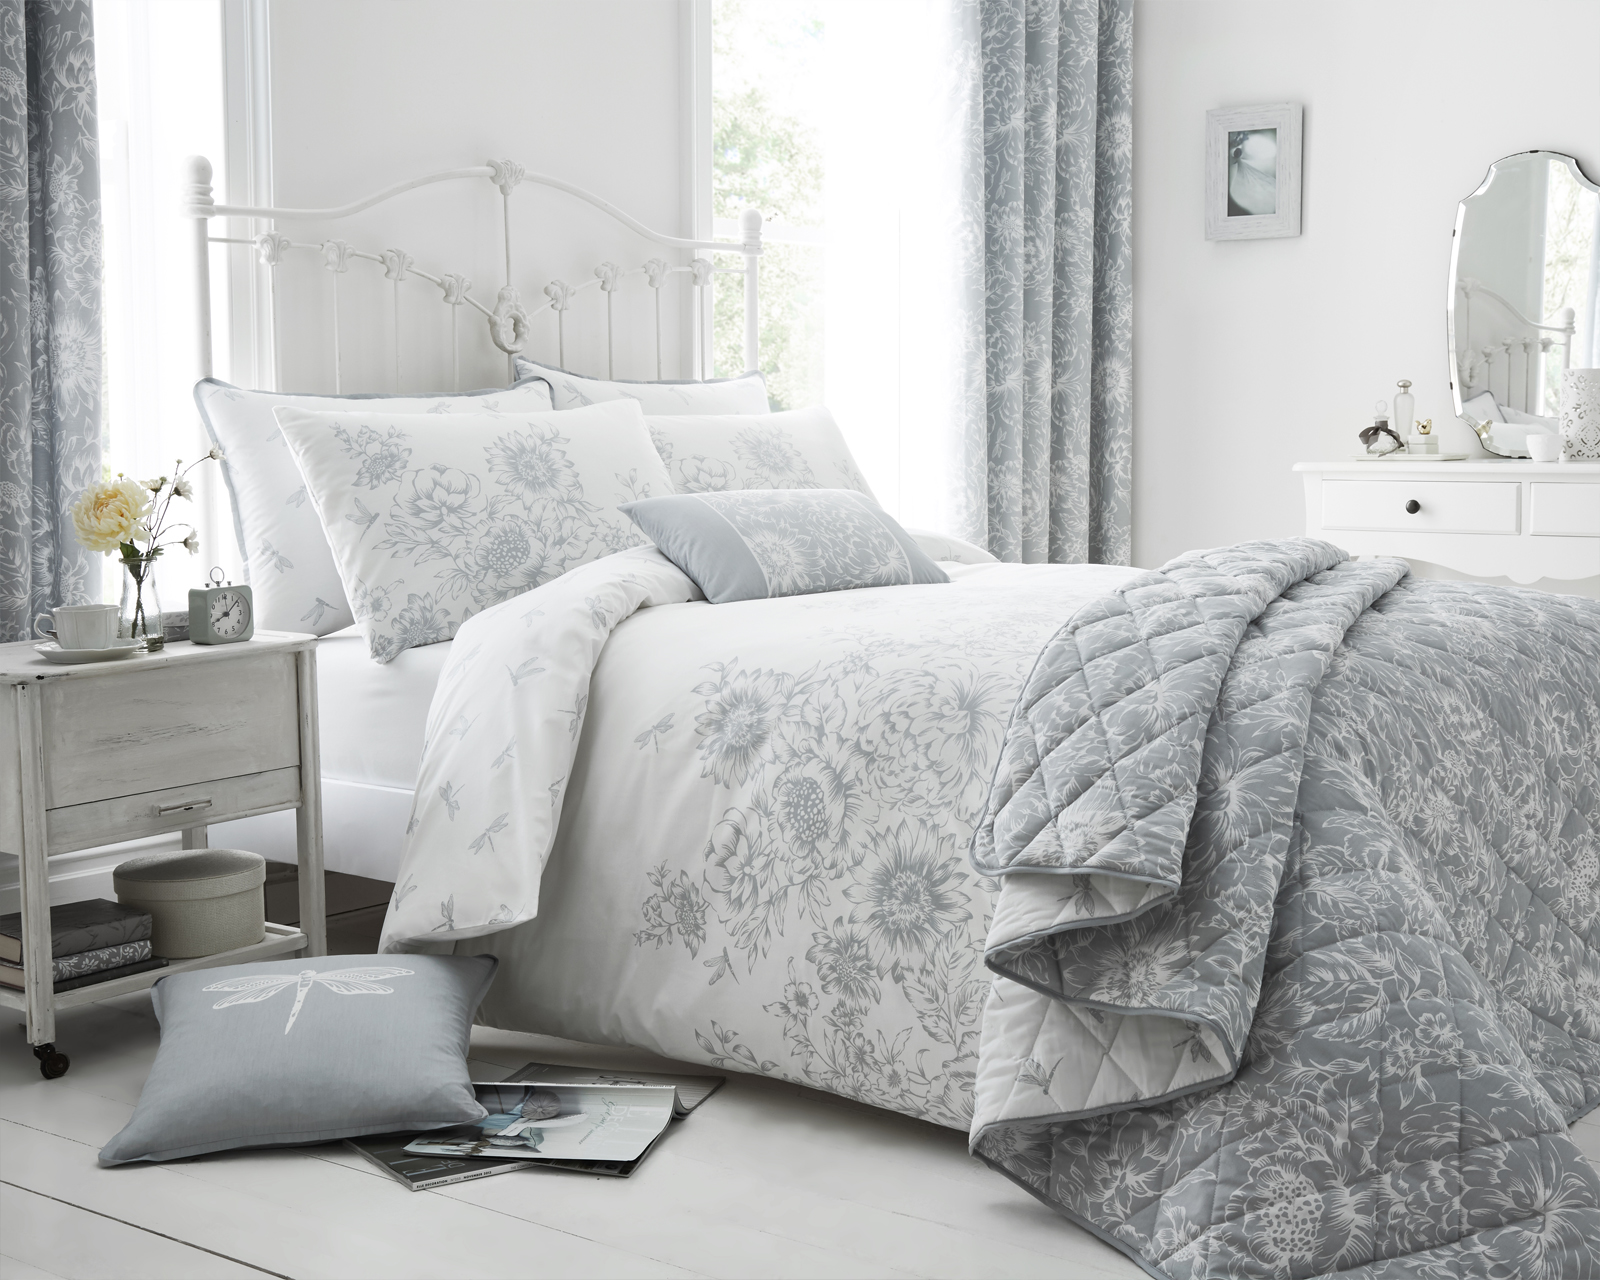 Floral Border Design Bedding Set in Grey